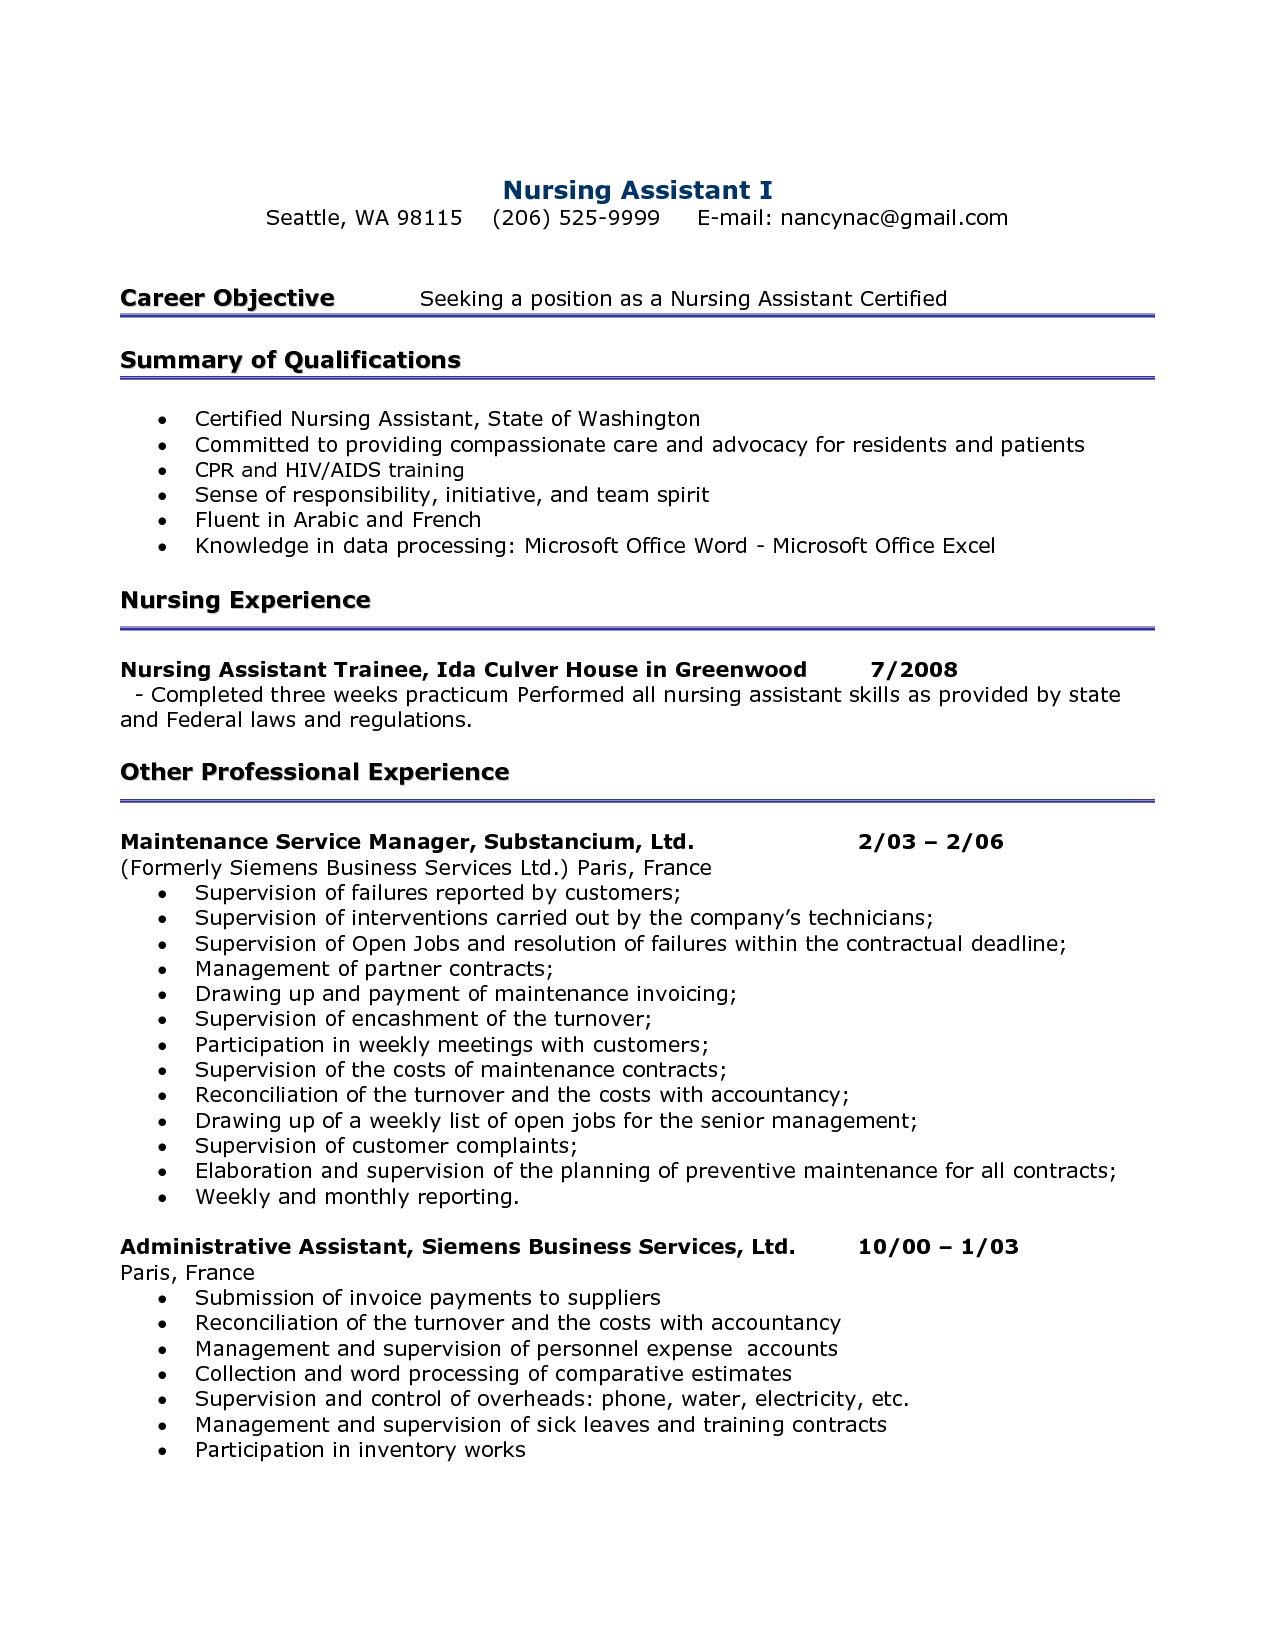 Marvelous Certified Nursing Assistant Resume   Http://www.resumecareer.info/certified Within Certified Nursing Assistant Resume